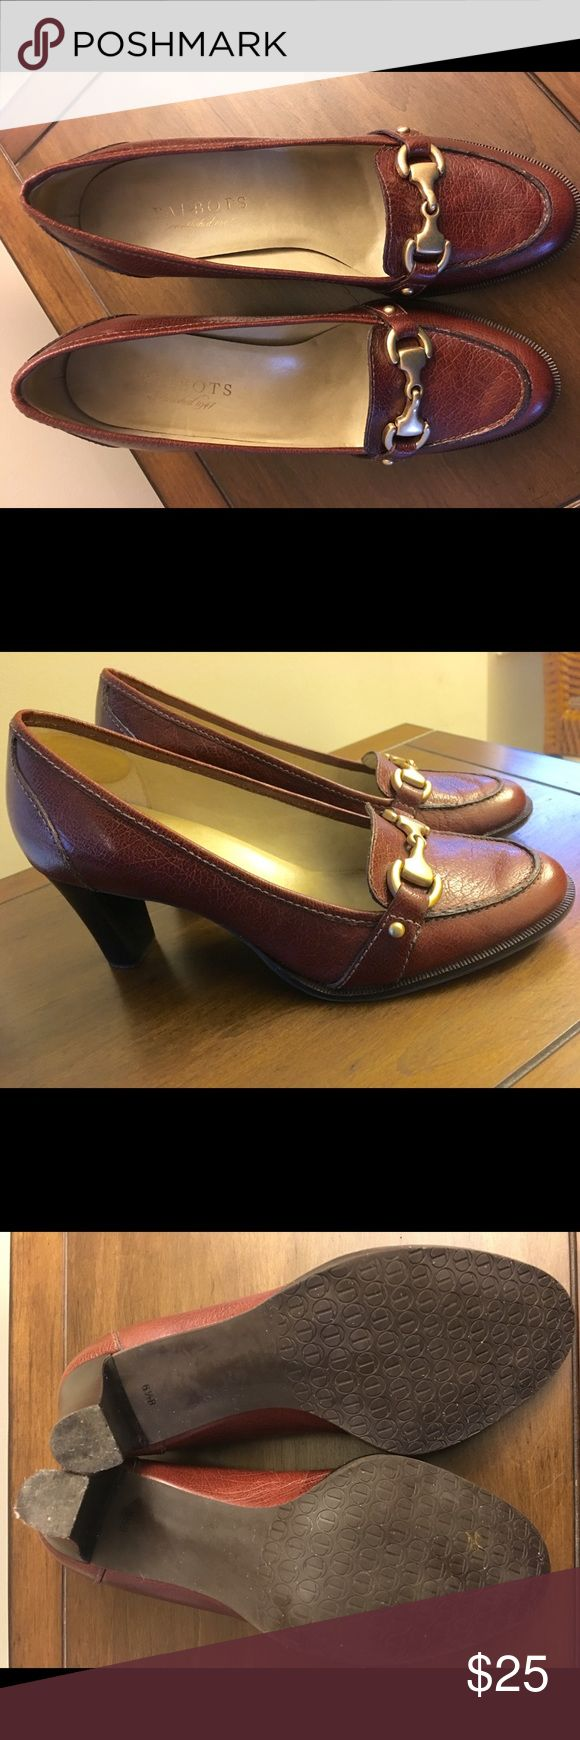 Talbot Brown Pumps Classy brown pump that can be dressed up with a professional suit or dressed down with a chic pair of jeans. Talbots Shoes Heels